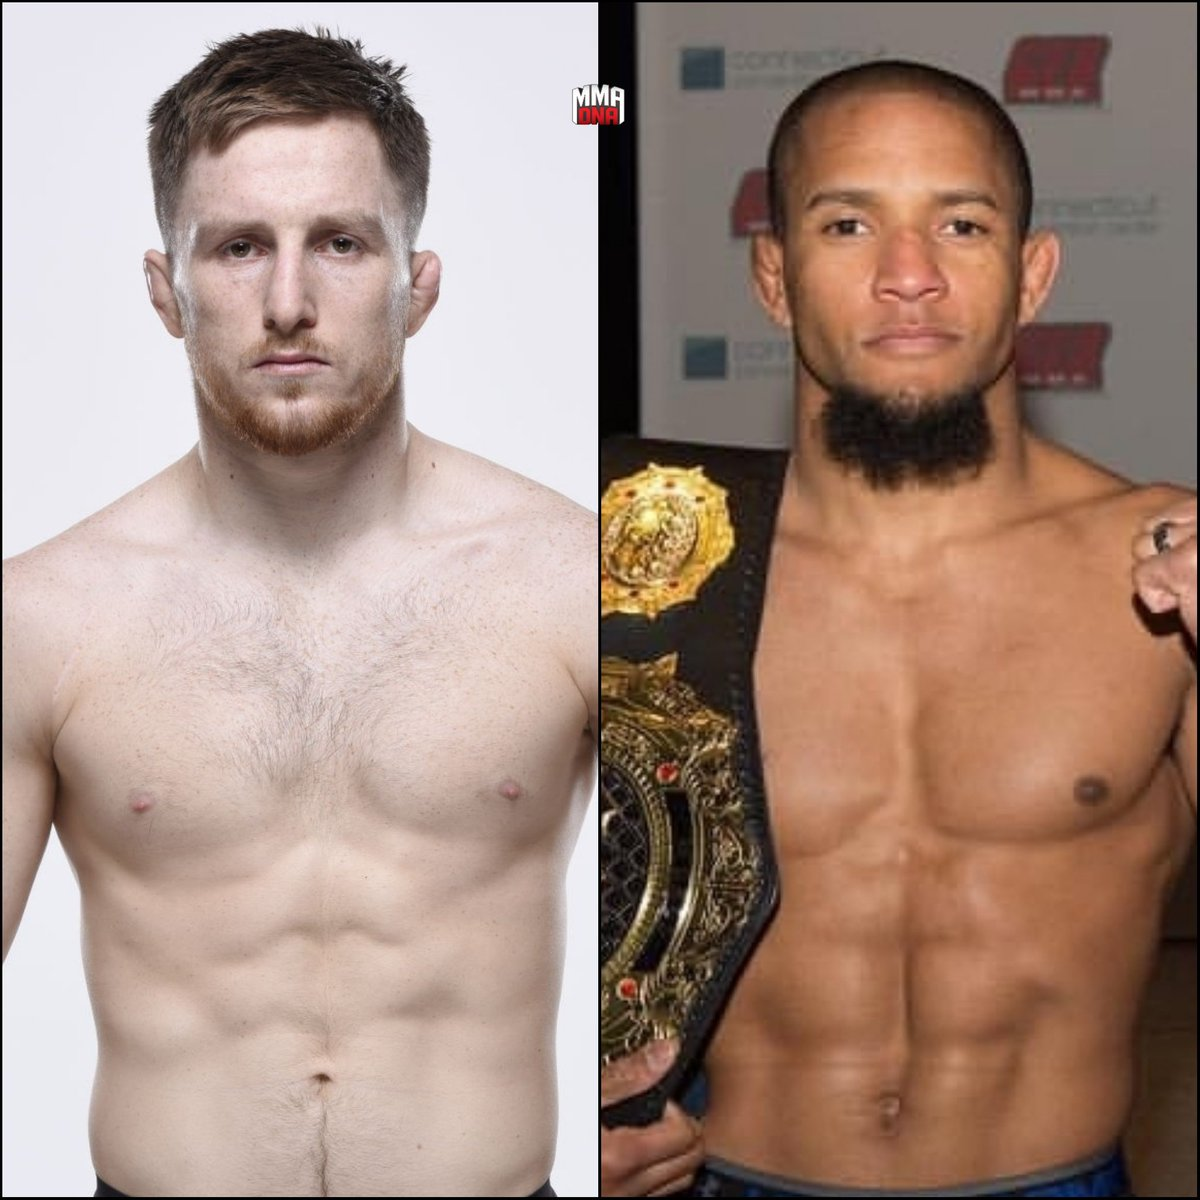 Brett Johns (@36Johns) will fight Tony Gravely (@tonygravely135) at UFN 166 in Raleigh, North Carolina. (Jan. 25, 2020). #UFC #UFCRaleigh #MMA #UFCESPN